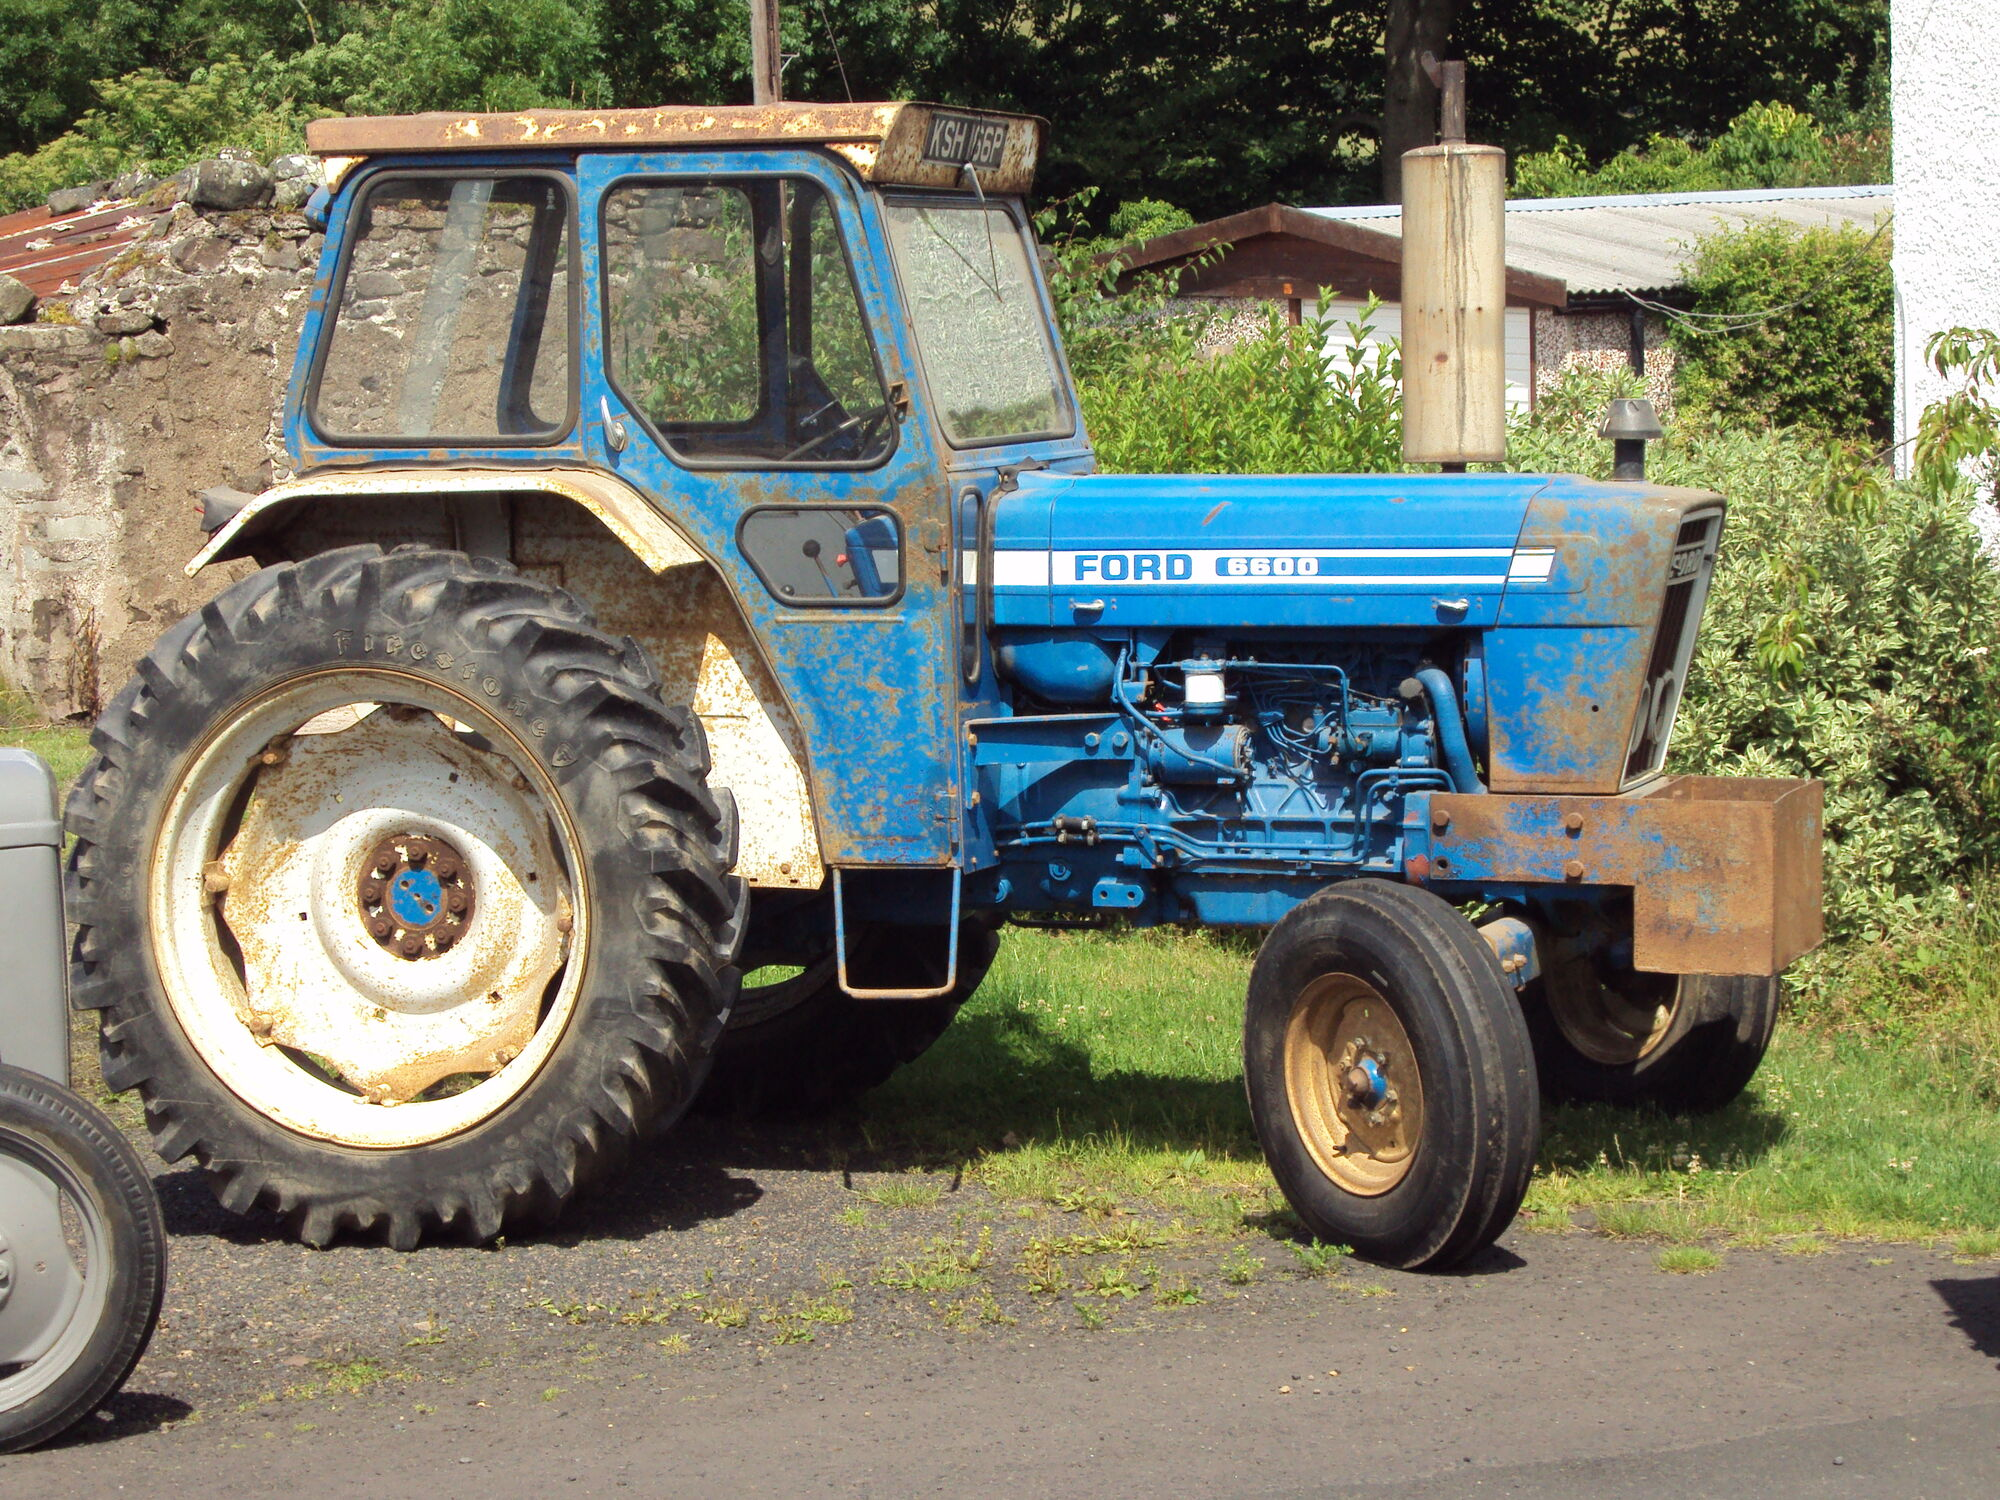 Ford Tractor 2600 Series : Category ford series tractor construction plant